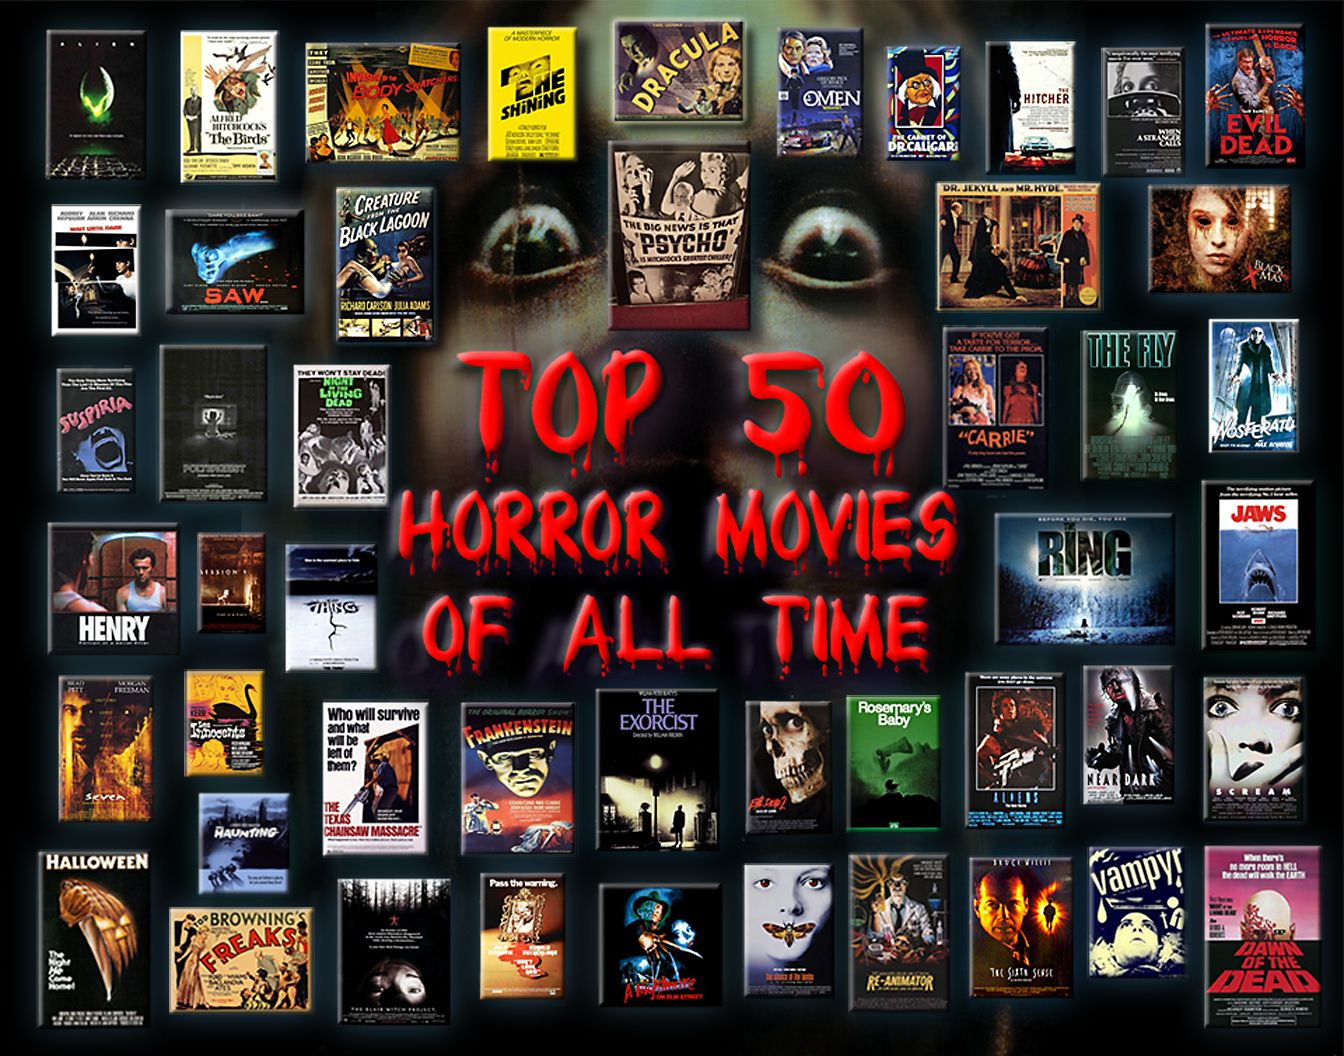 Top 50 movie posters of all time